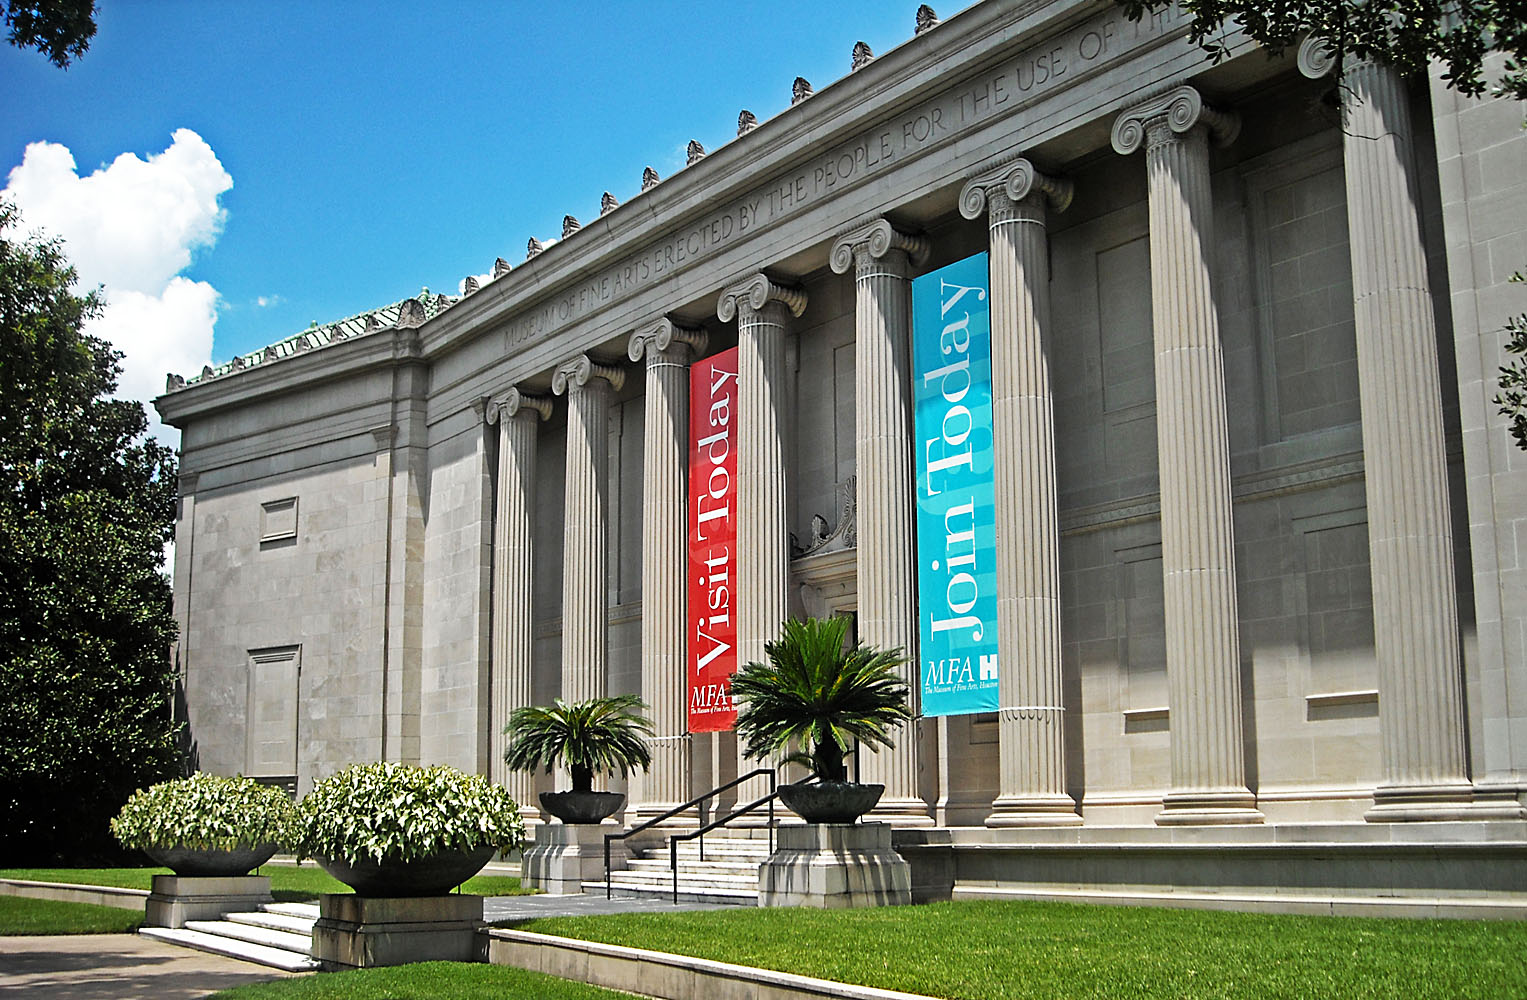 Museum of Fine Arts (MFAH) That Everyone Must Visit in Houston